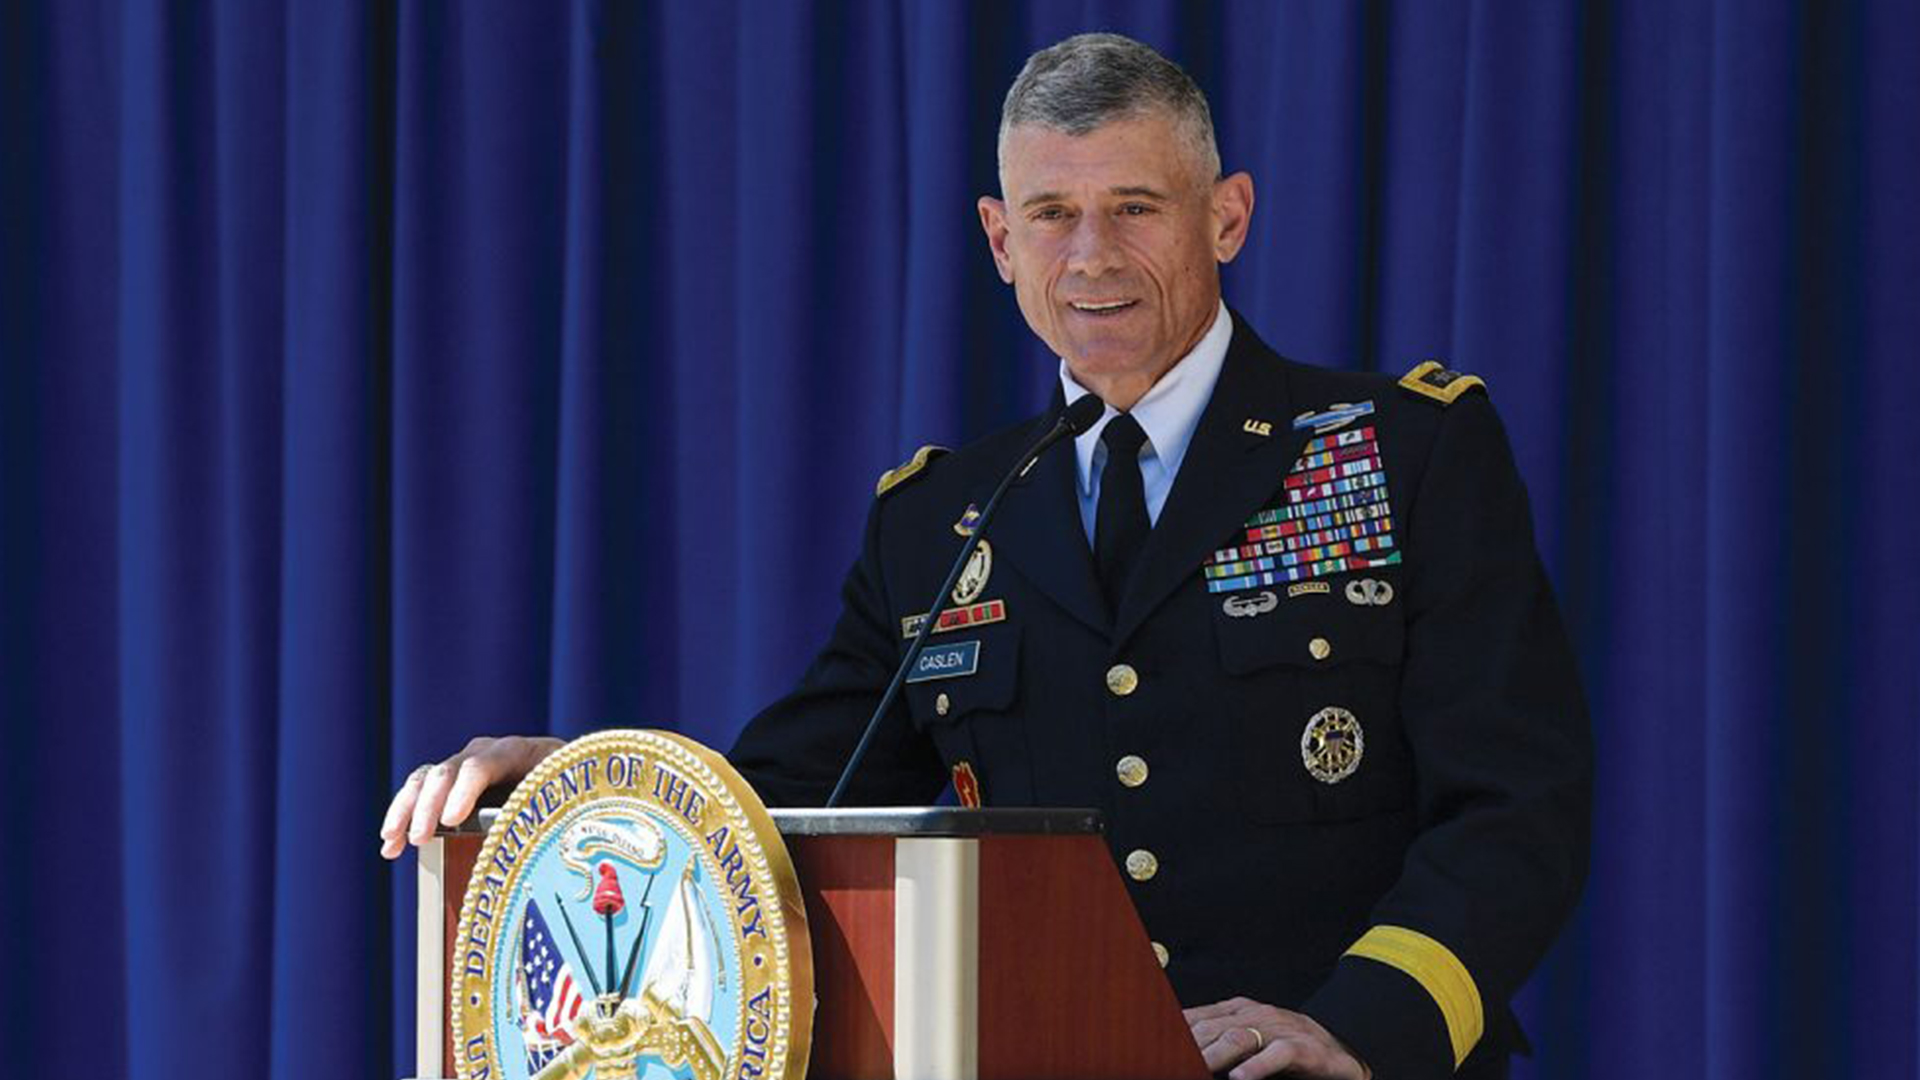 USC trustees select Army general as new president | WSAV-TV